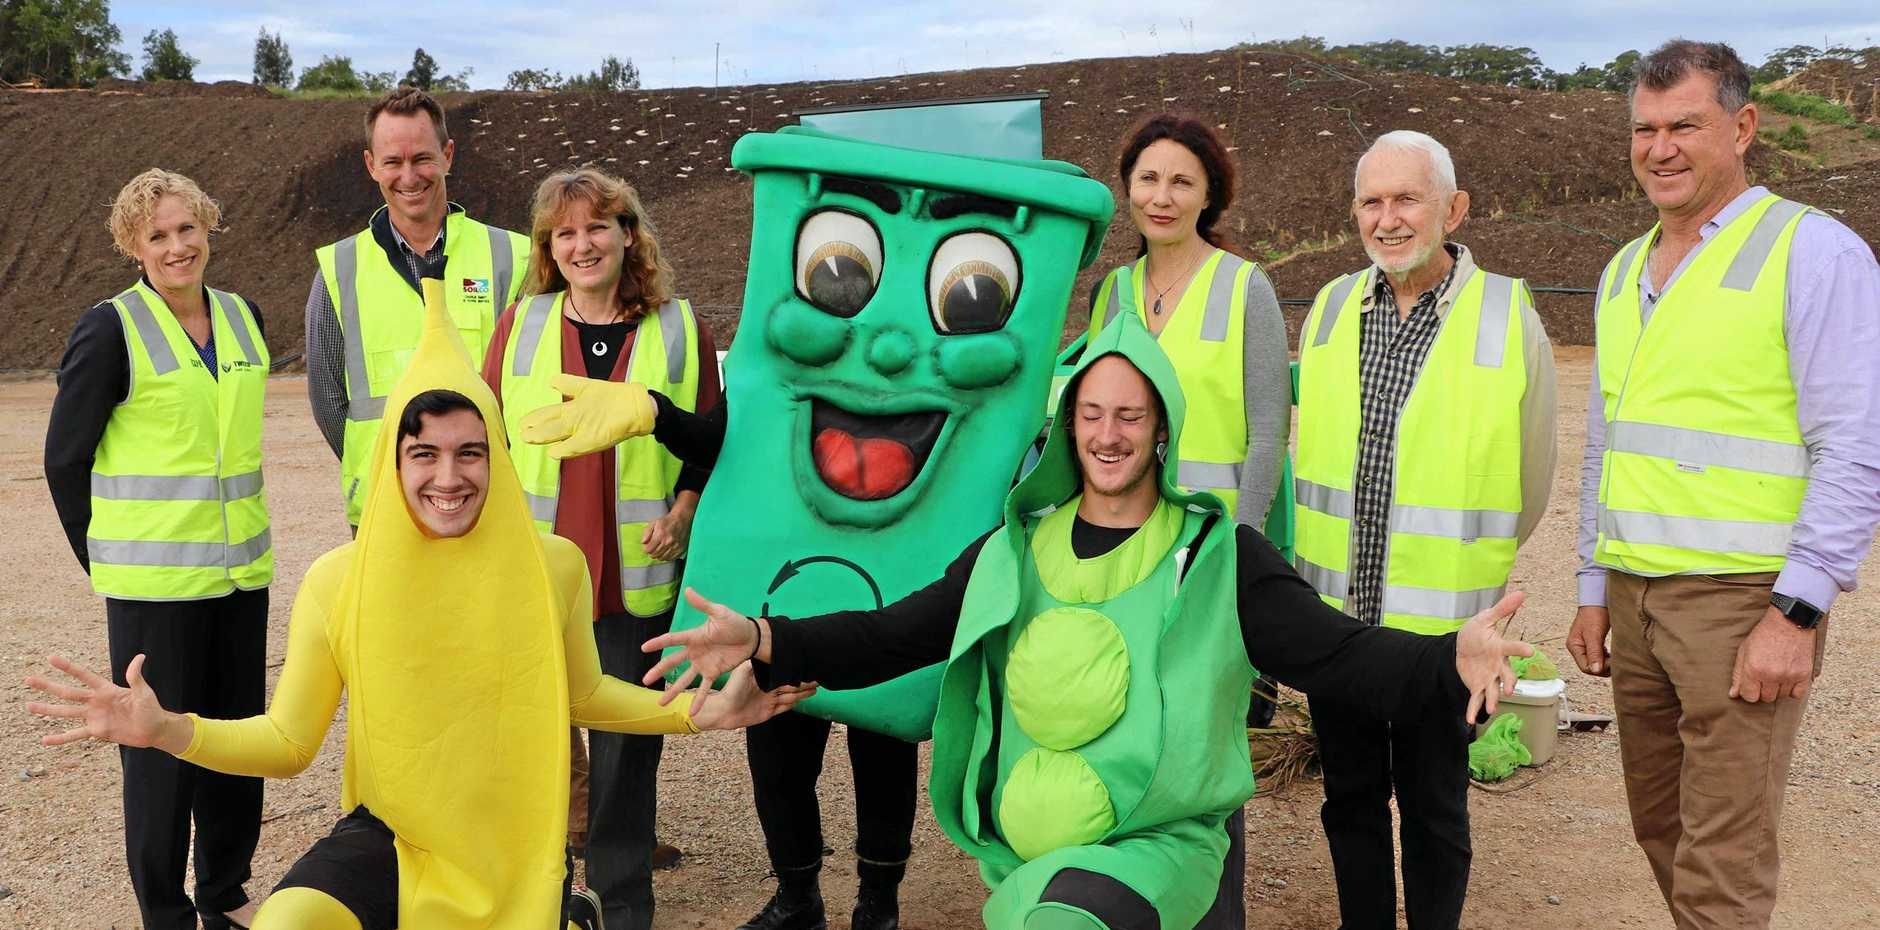 Willy the wheely bin and friends along with Council Director of Community and Natural Resources, Tracey Stinson, Soilco General Manager Charlie Emery, Mayor of Tweed Katie Milne, Deputy Mayor Chris Cherry and Councillors Ron Cooper and Pryce Allsop.